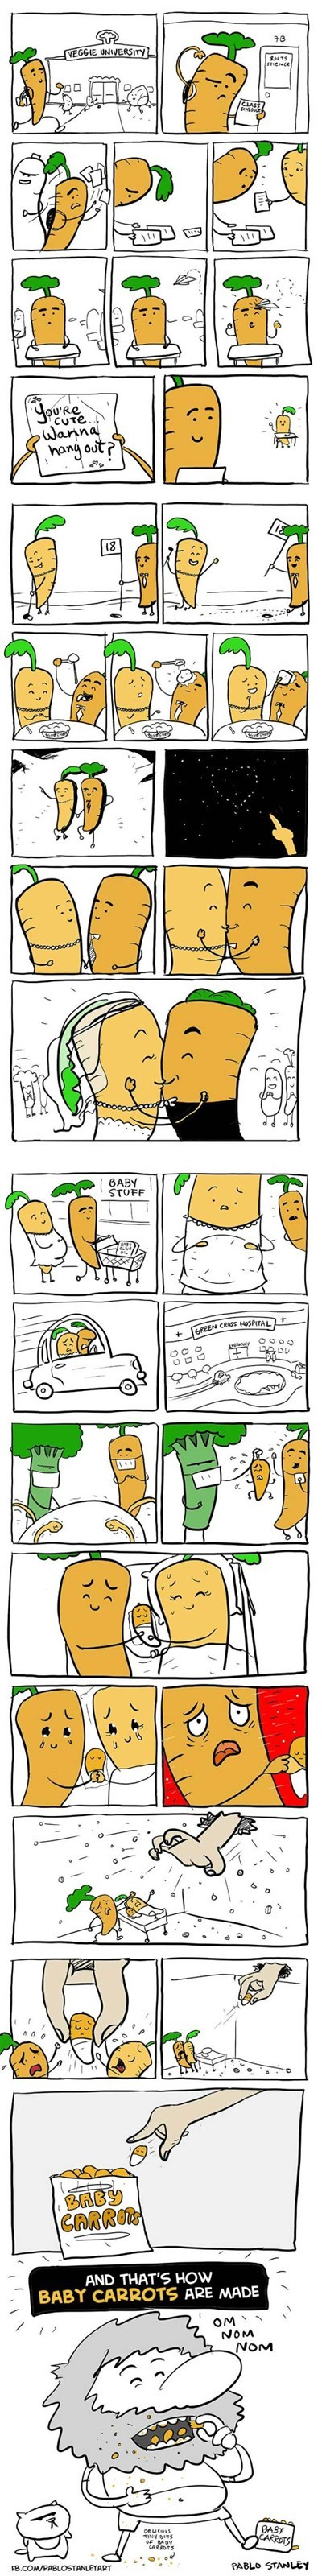 childbirth comics puns carrots g rated Parenting FAILS - 7075196160